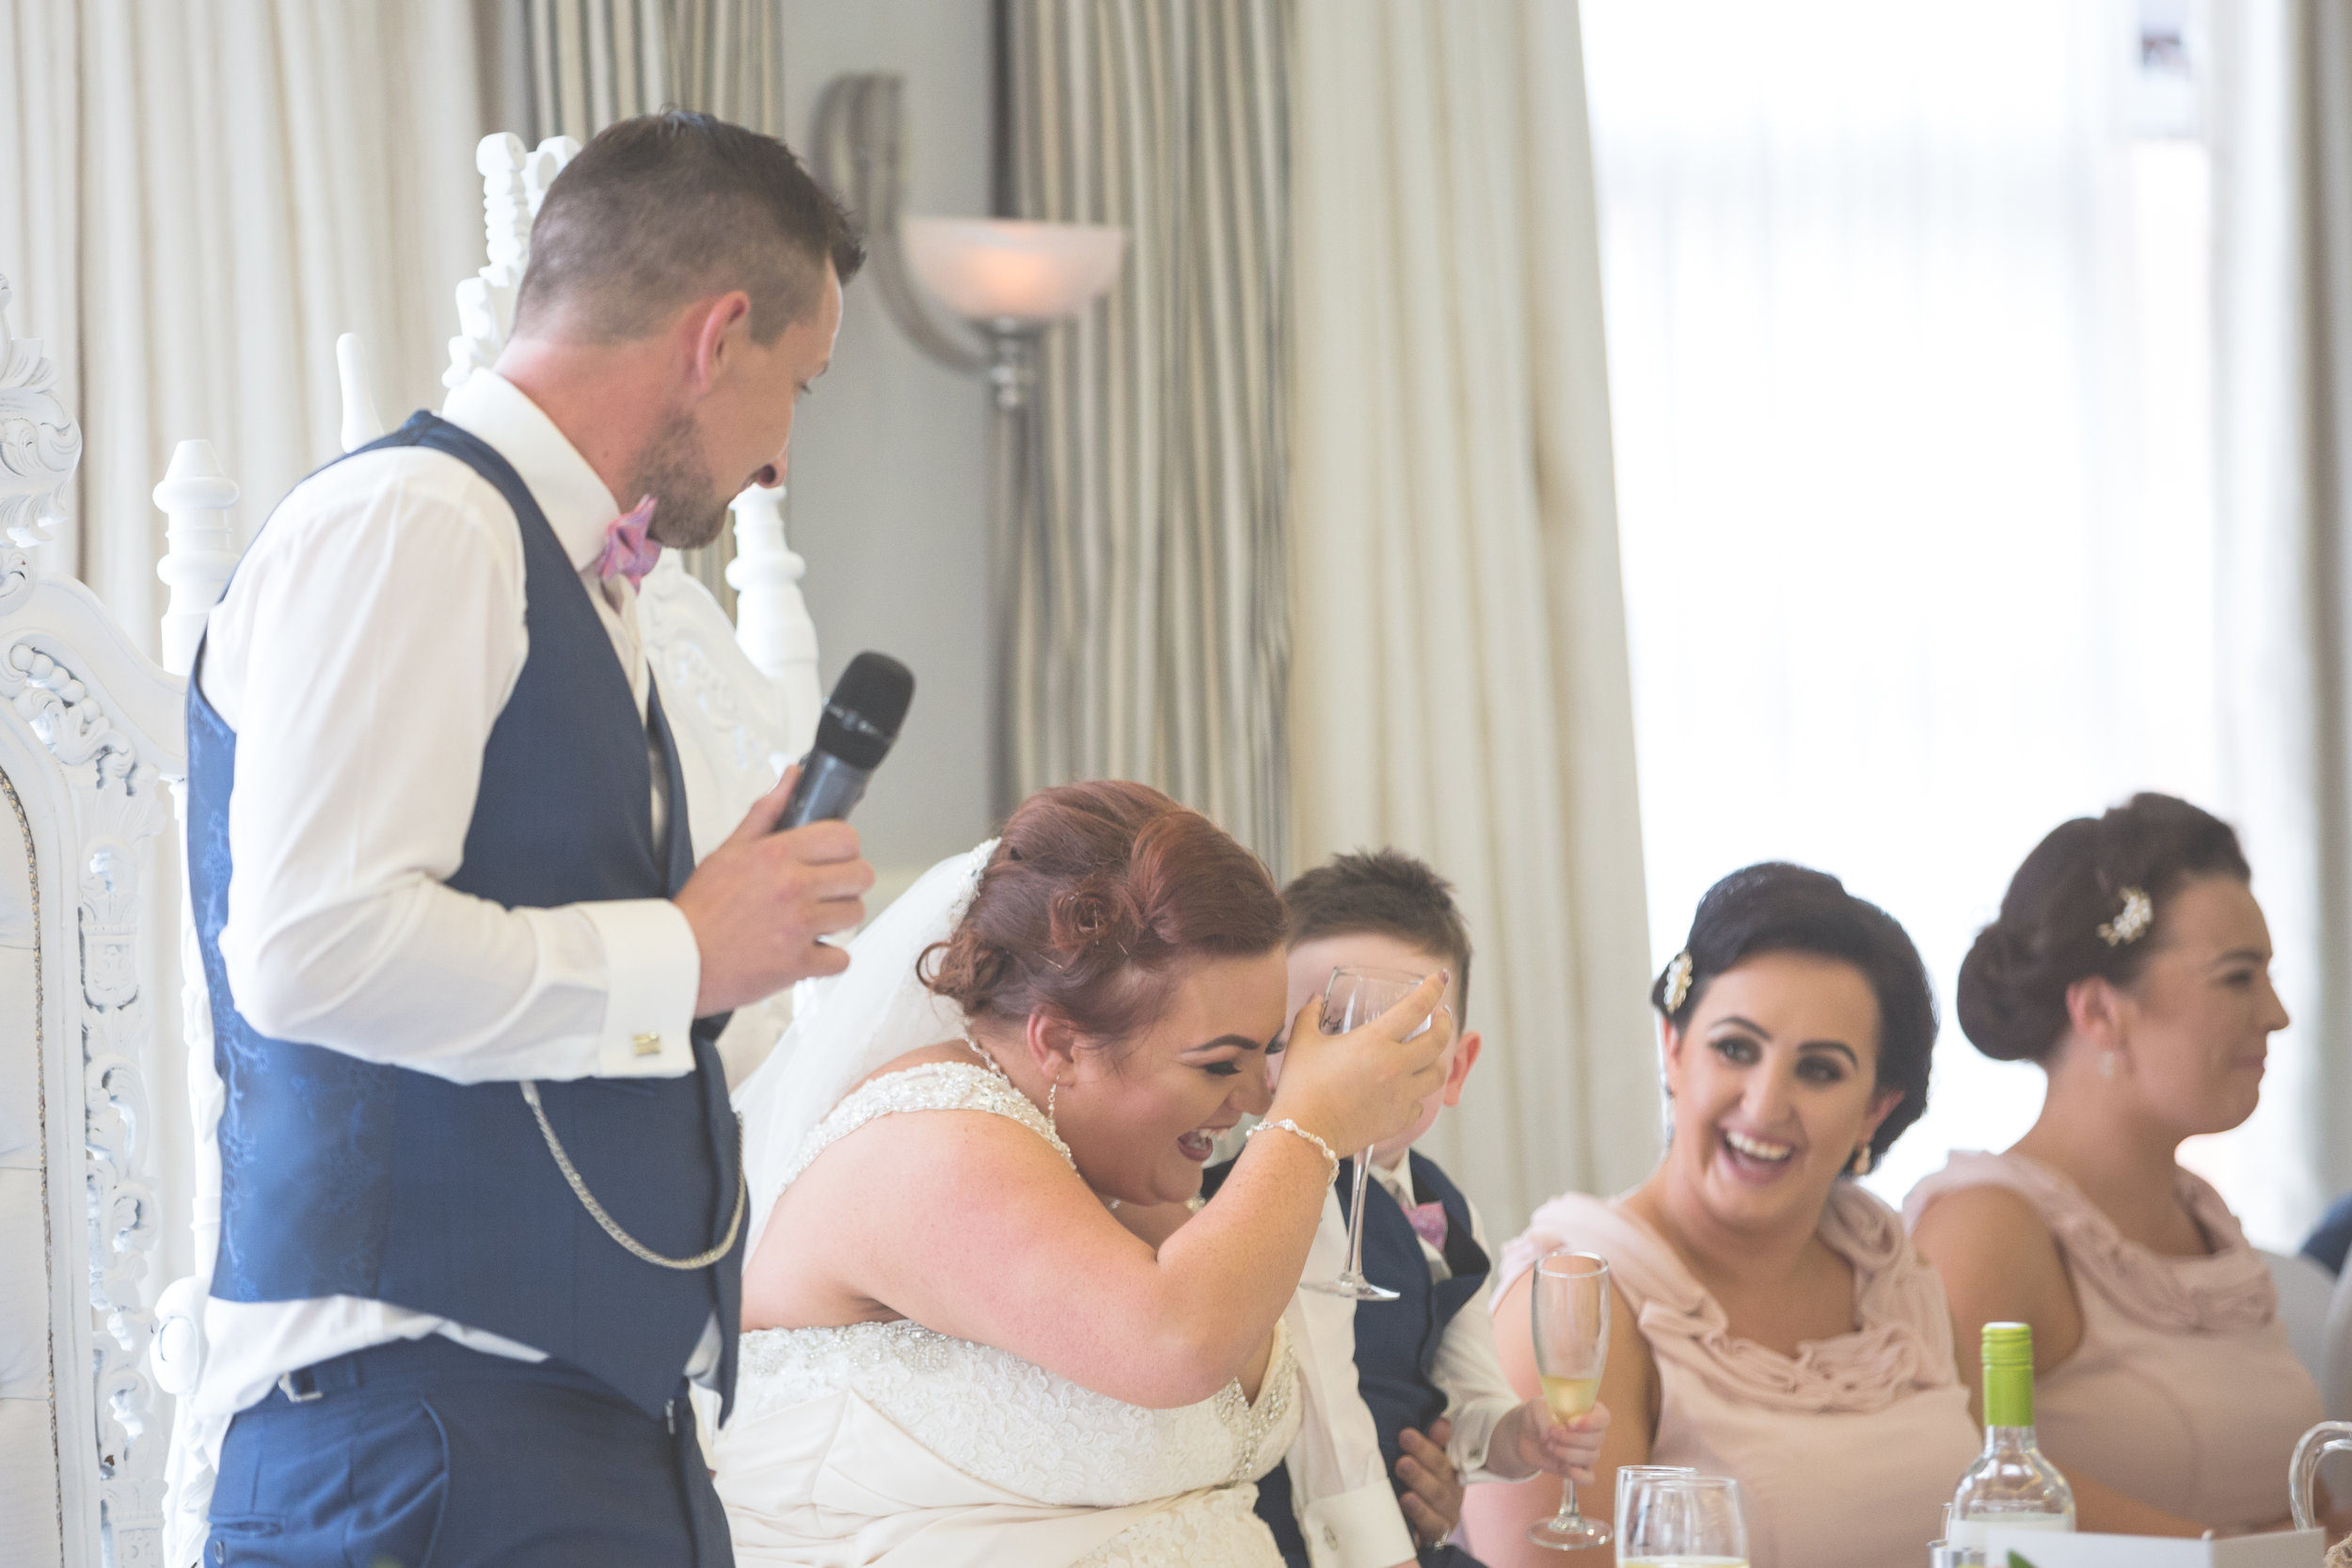 Antoinette & Stephen - Speeches | Brian McEwan Photography | Wedding Photographer Northern Ireland 84.jpg